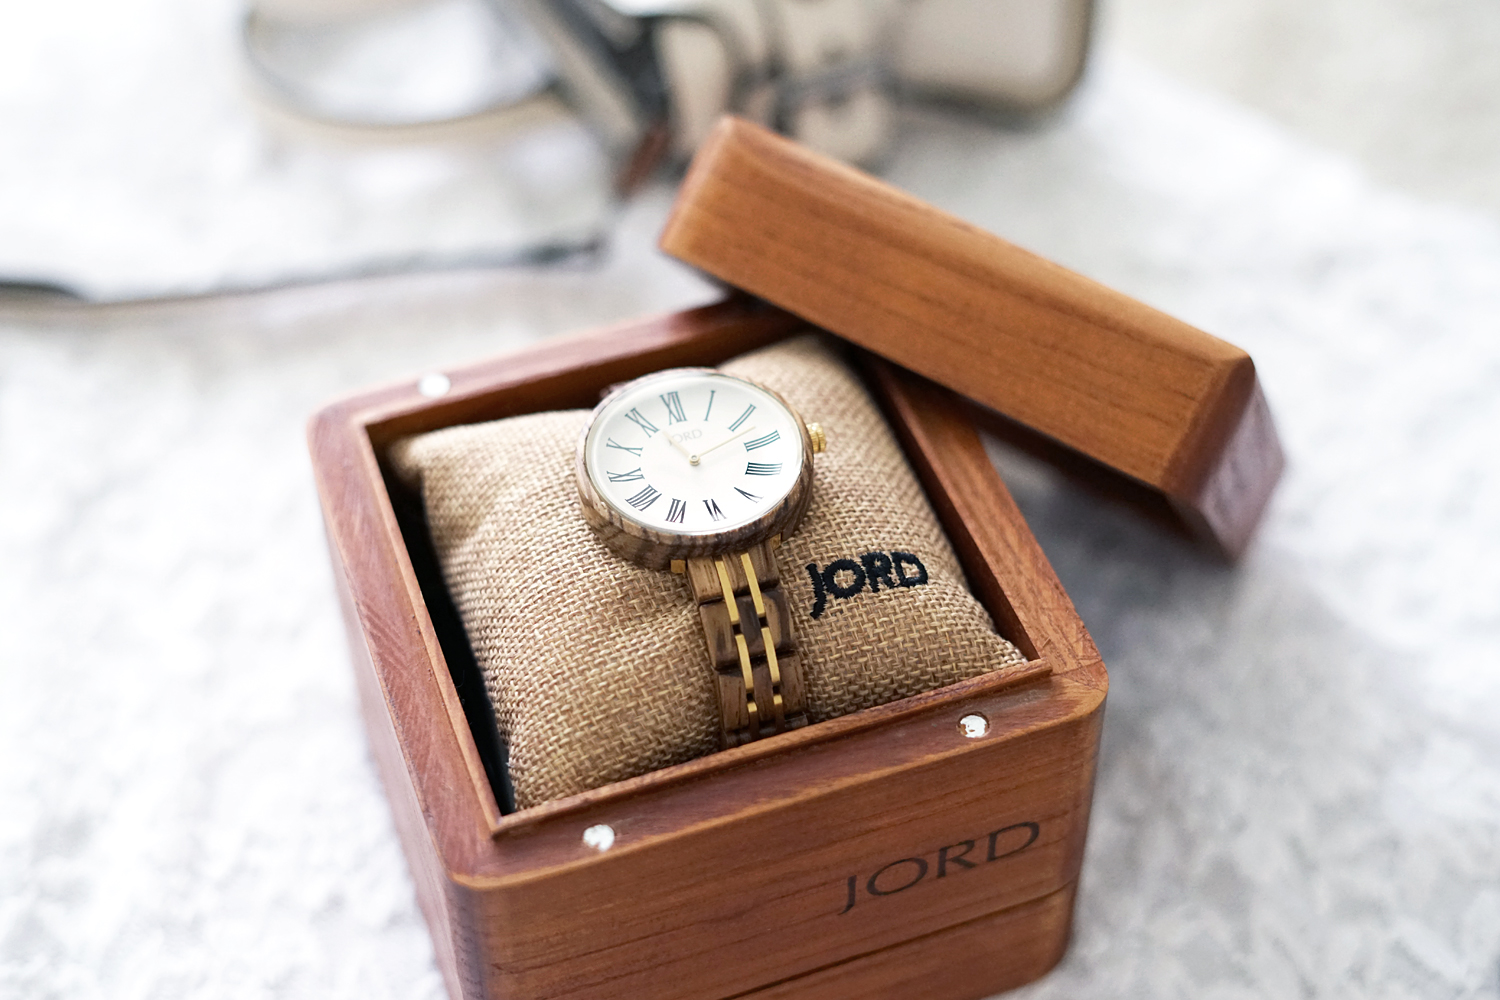 10jord-watch-time-style-ootd